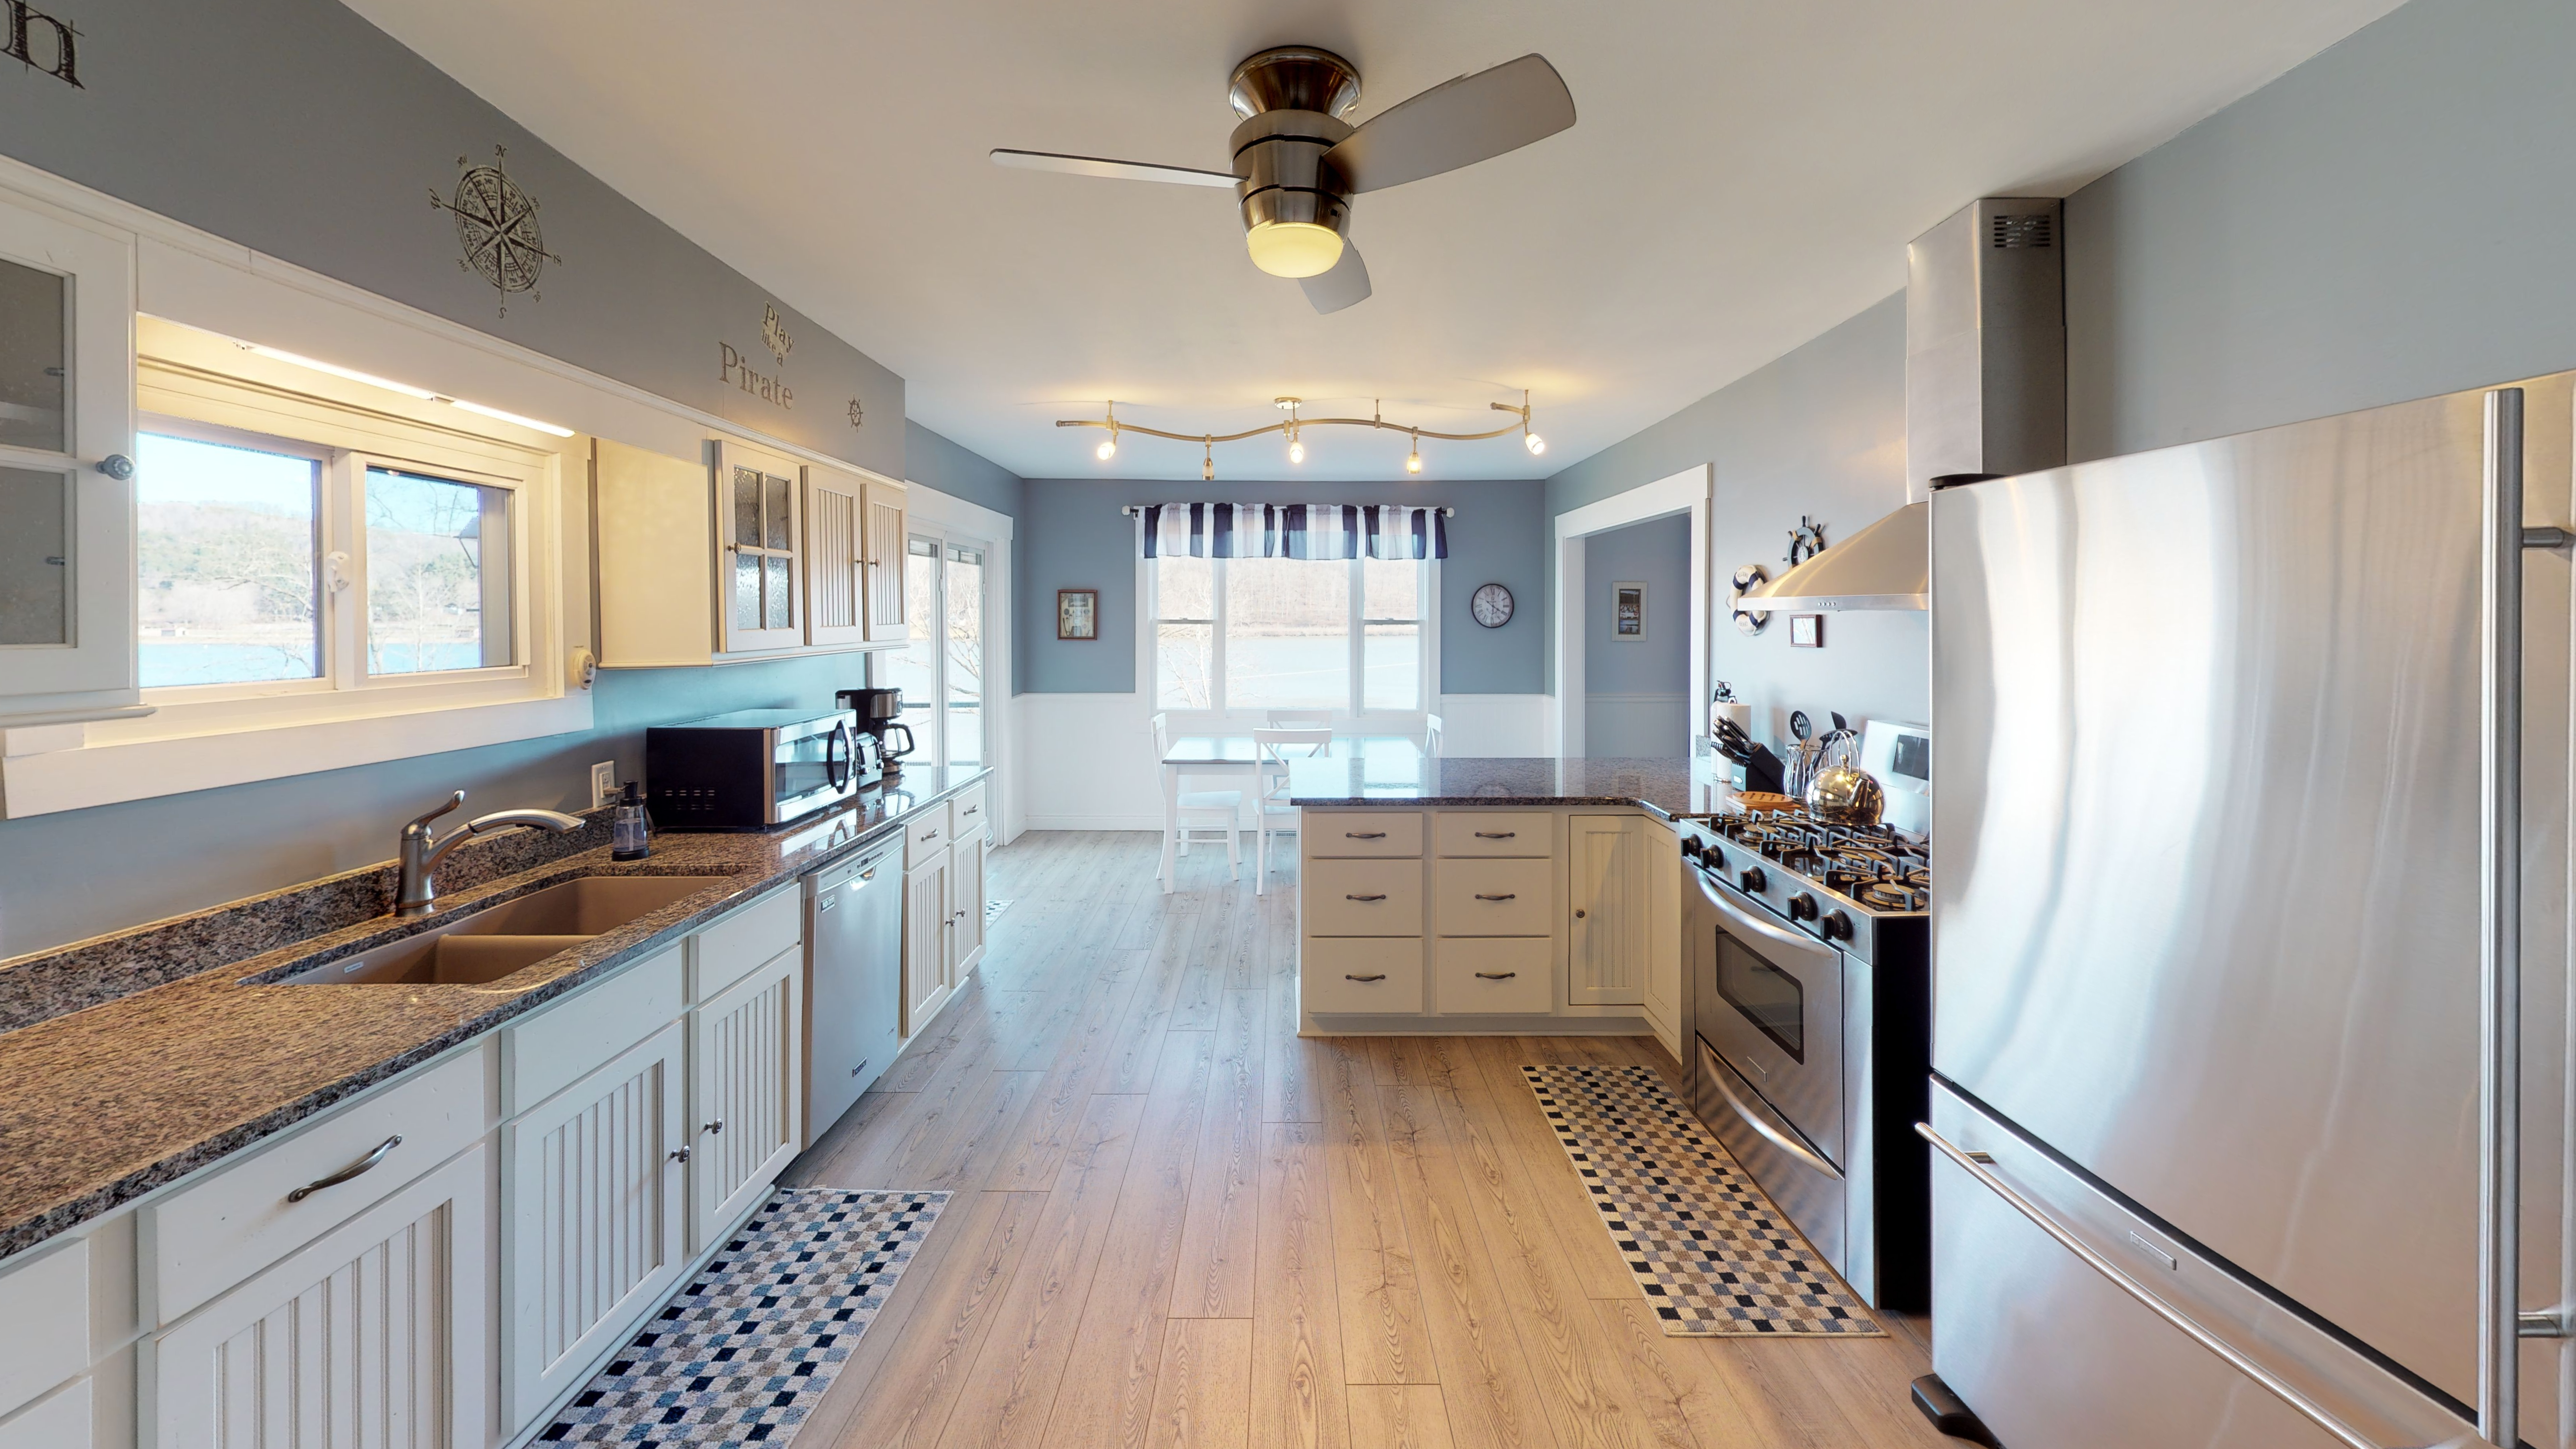 Kitchen - Large, well-appointed kitchen with high end appliances and amazing views of the lake.